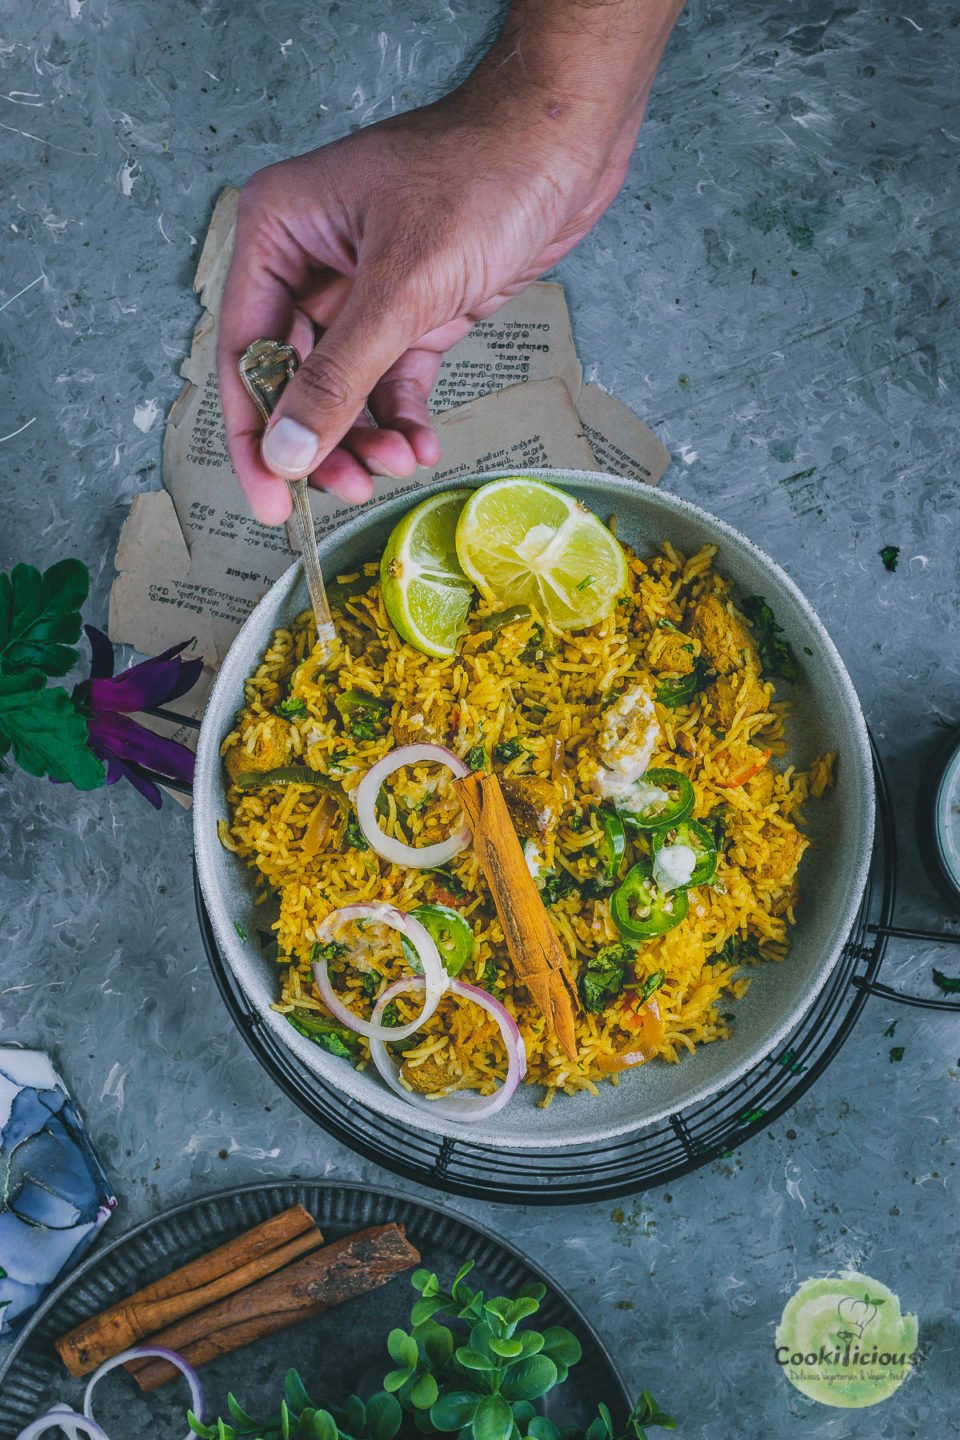 a hand reaching out with a spoon in hand to dig in to a bowl of Soya Chunks Pulao